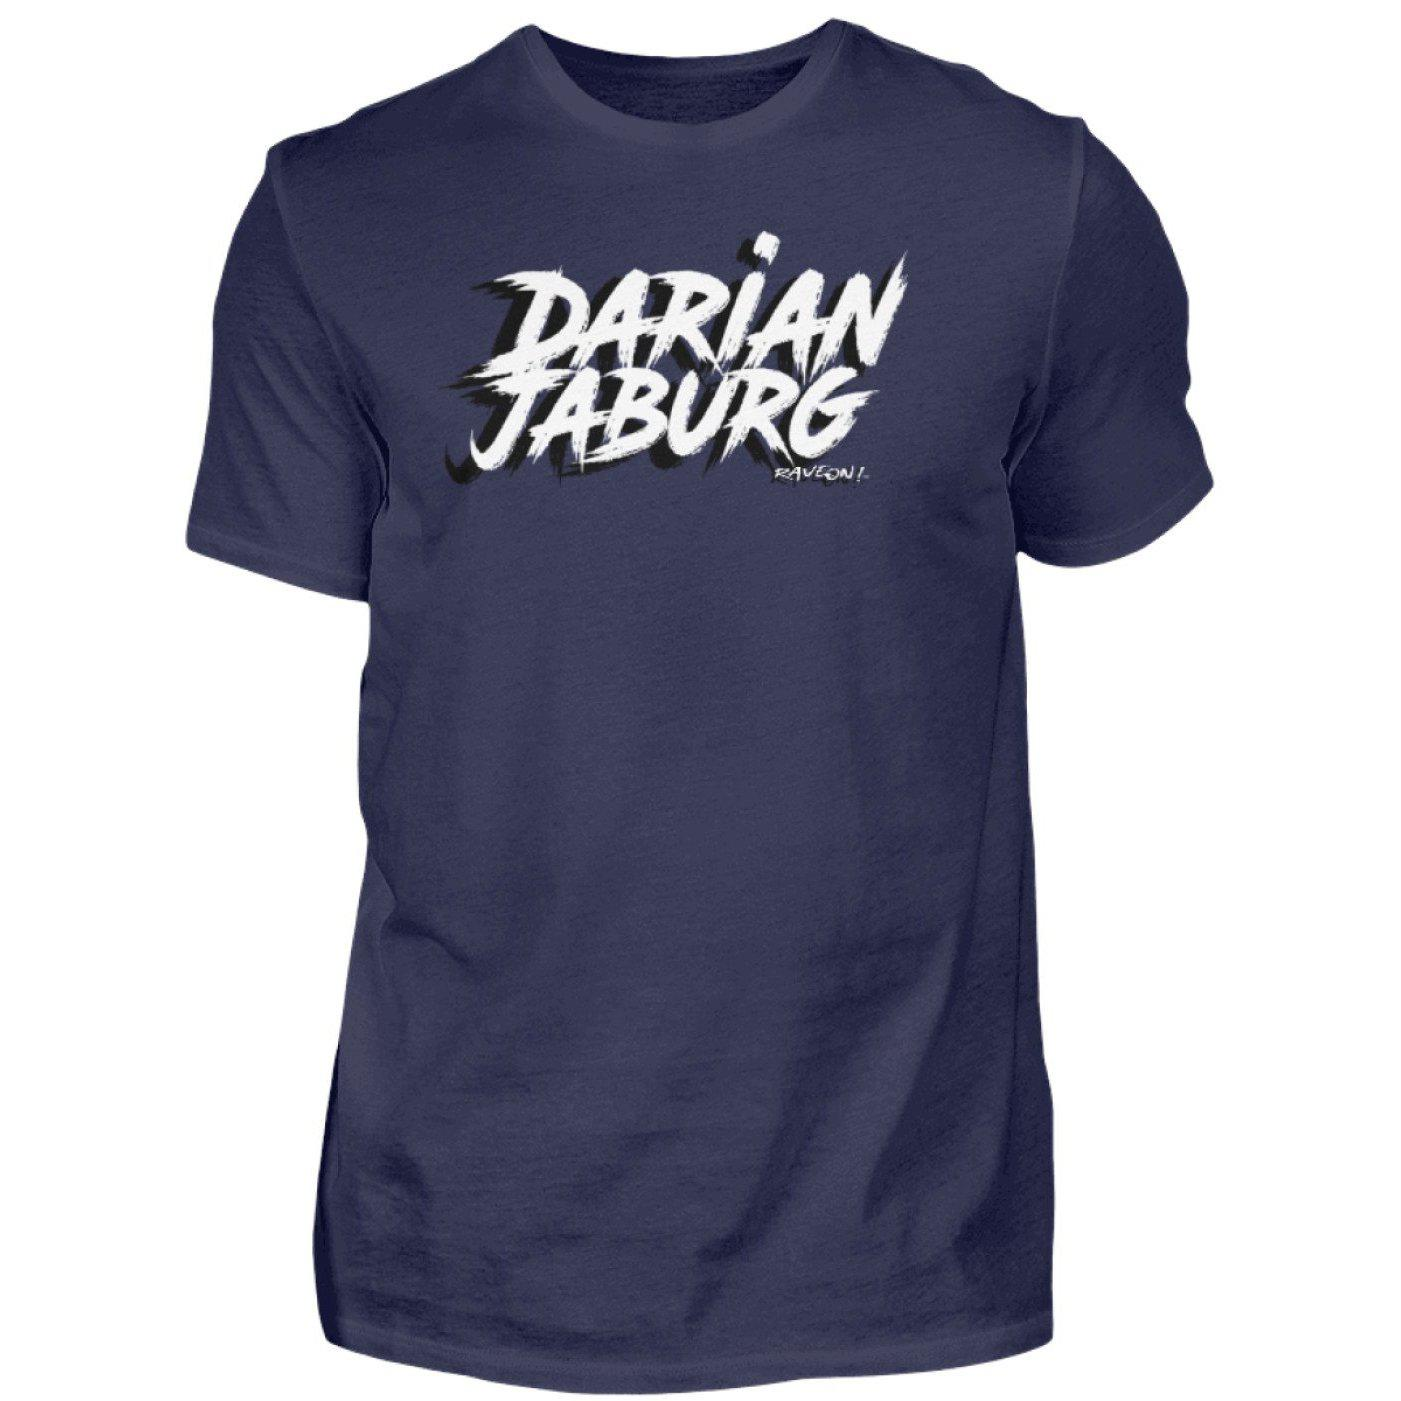 Darian Jaburg - BS Rec.Black - Rave On!® - Herren Premiumshirt Herren Premium Shirt Navy / S - Rave On!® der Club & Techno Szene Shop für Coole Junge Mode Streetwear Style & Fashion Outfits + Sexy Festival 420 Stuff